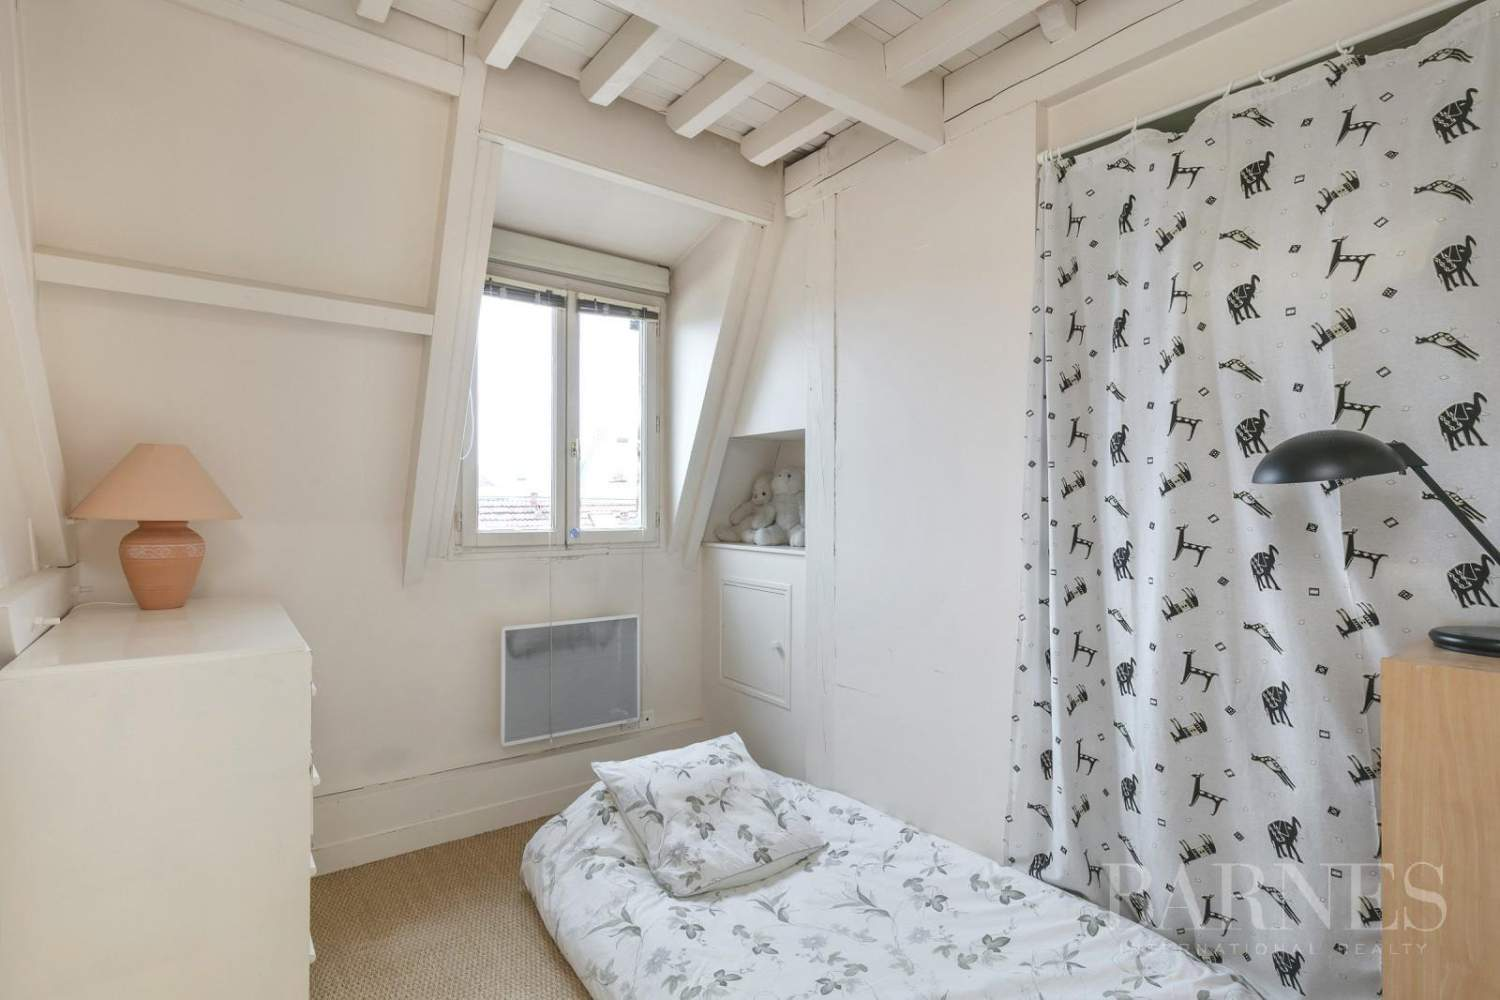 FOR SALE - SAINT GERMAIN EN LAYE - 2 MIN FROM THE RER A LINE - 3-BEDROOM APARTMENT - SHOPS AND SCHOOLS picture 9